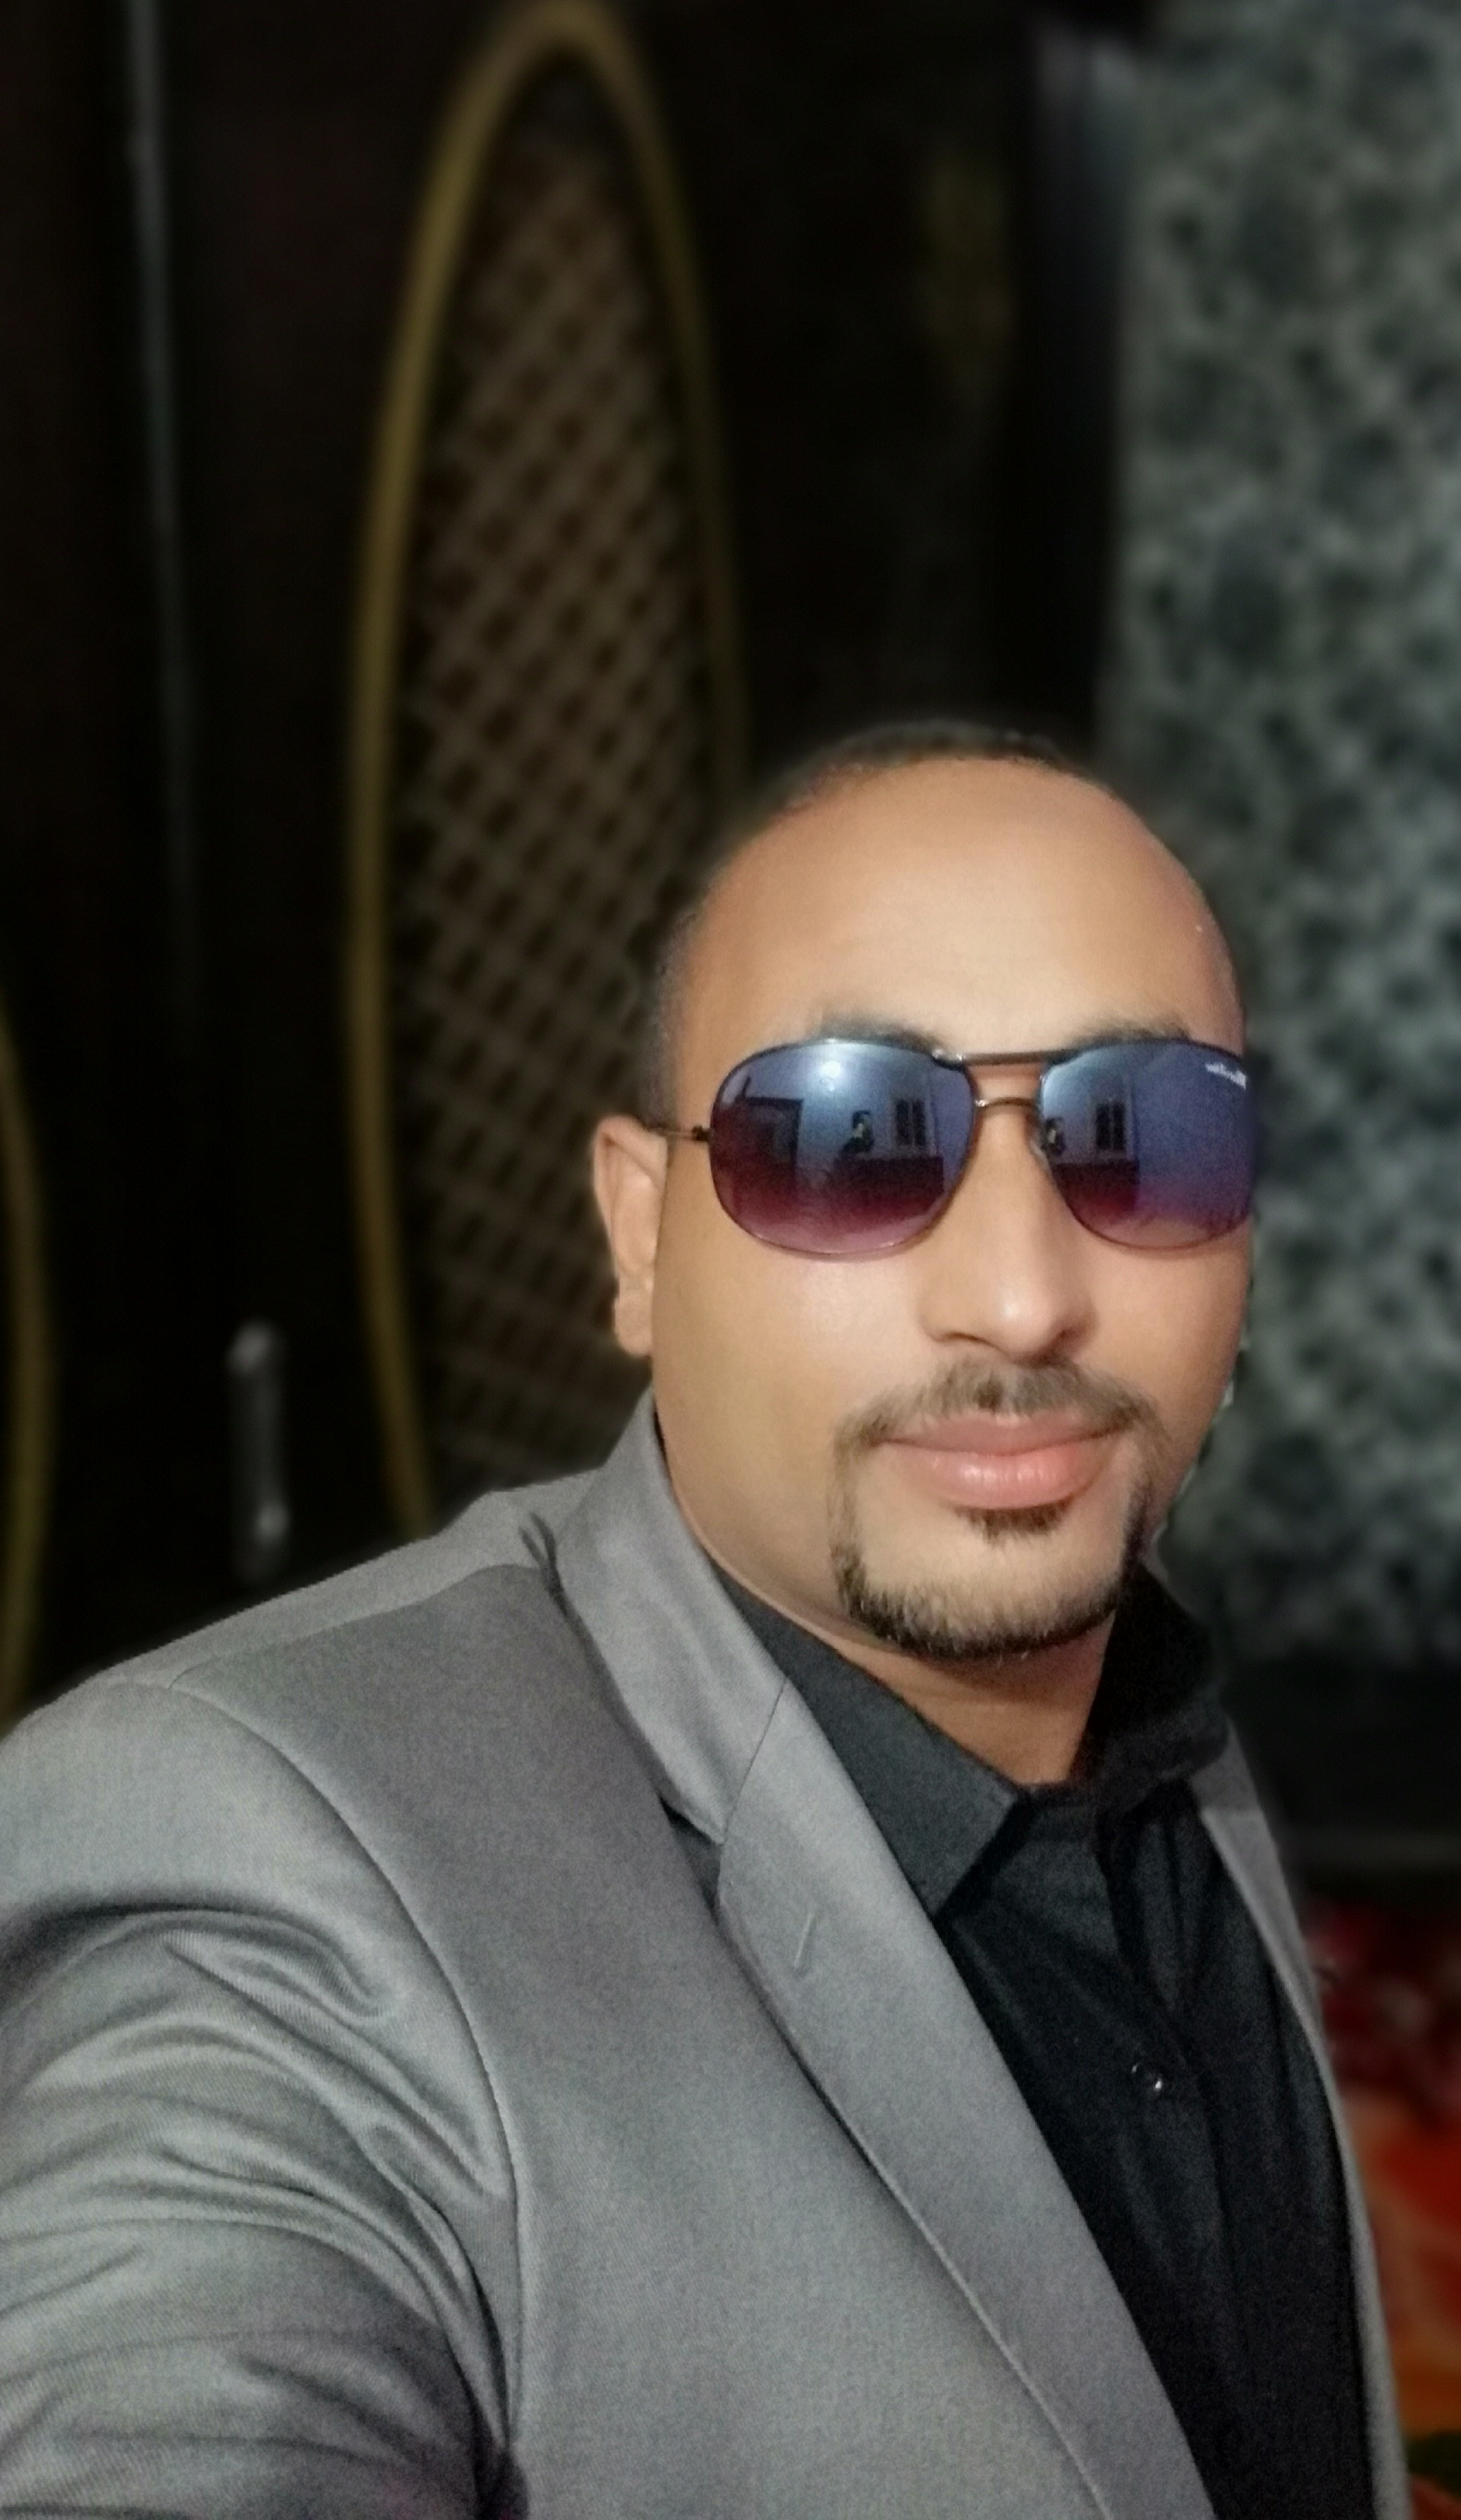 11089Ahmedhassan Profile Picture